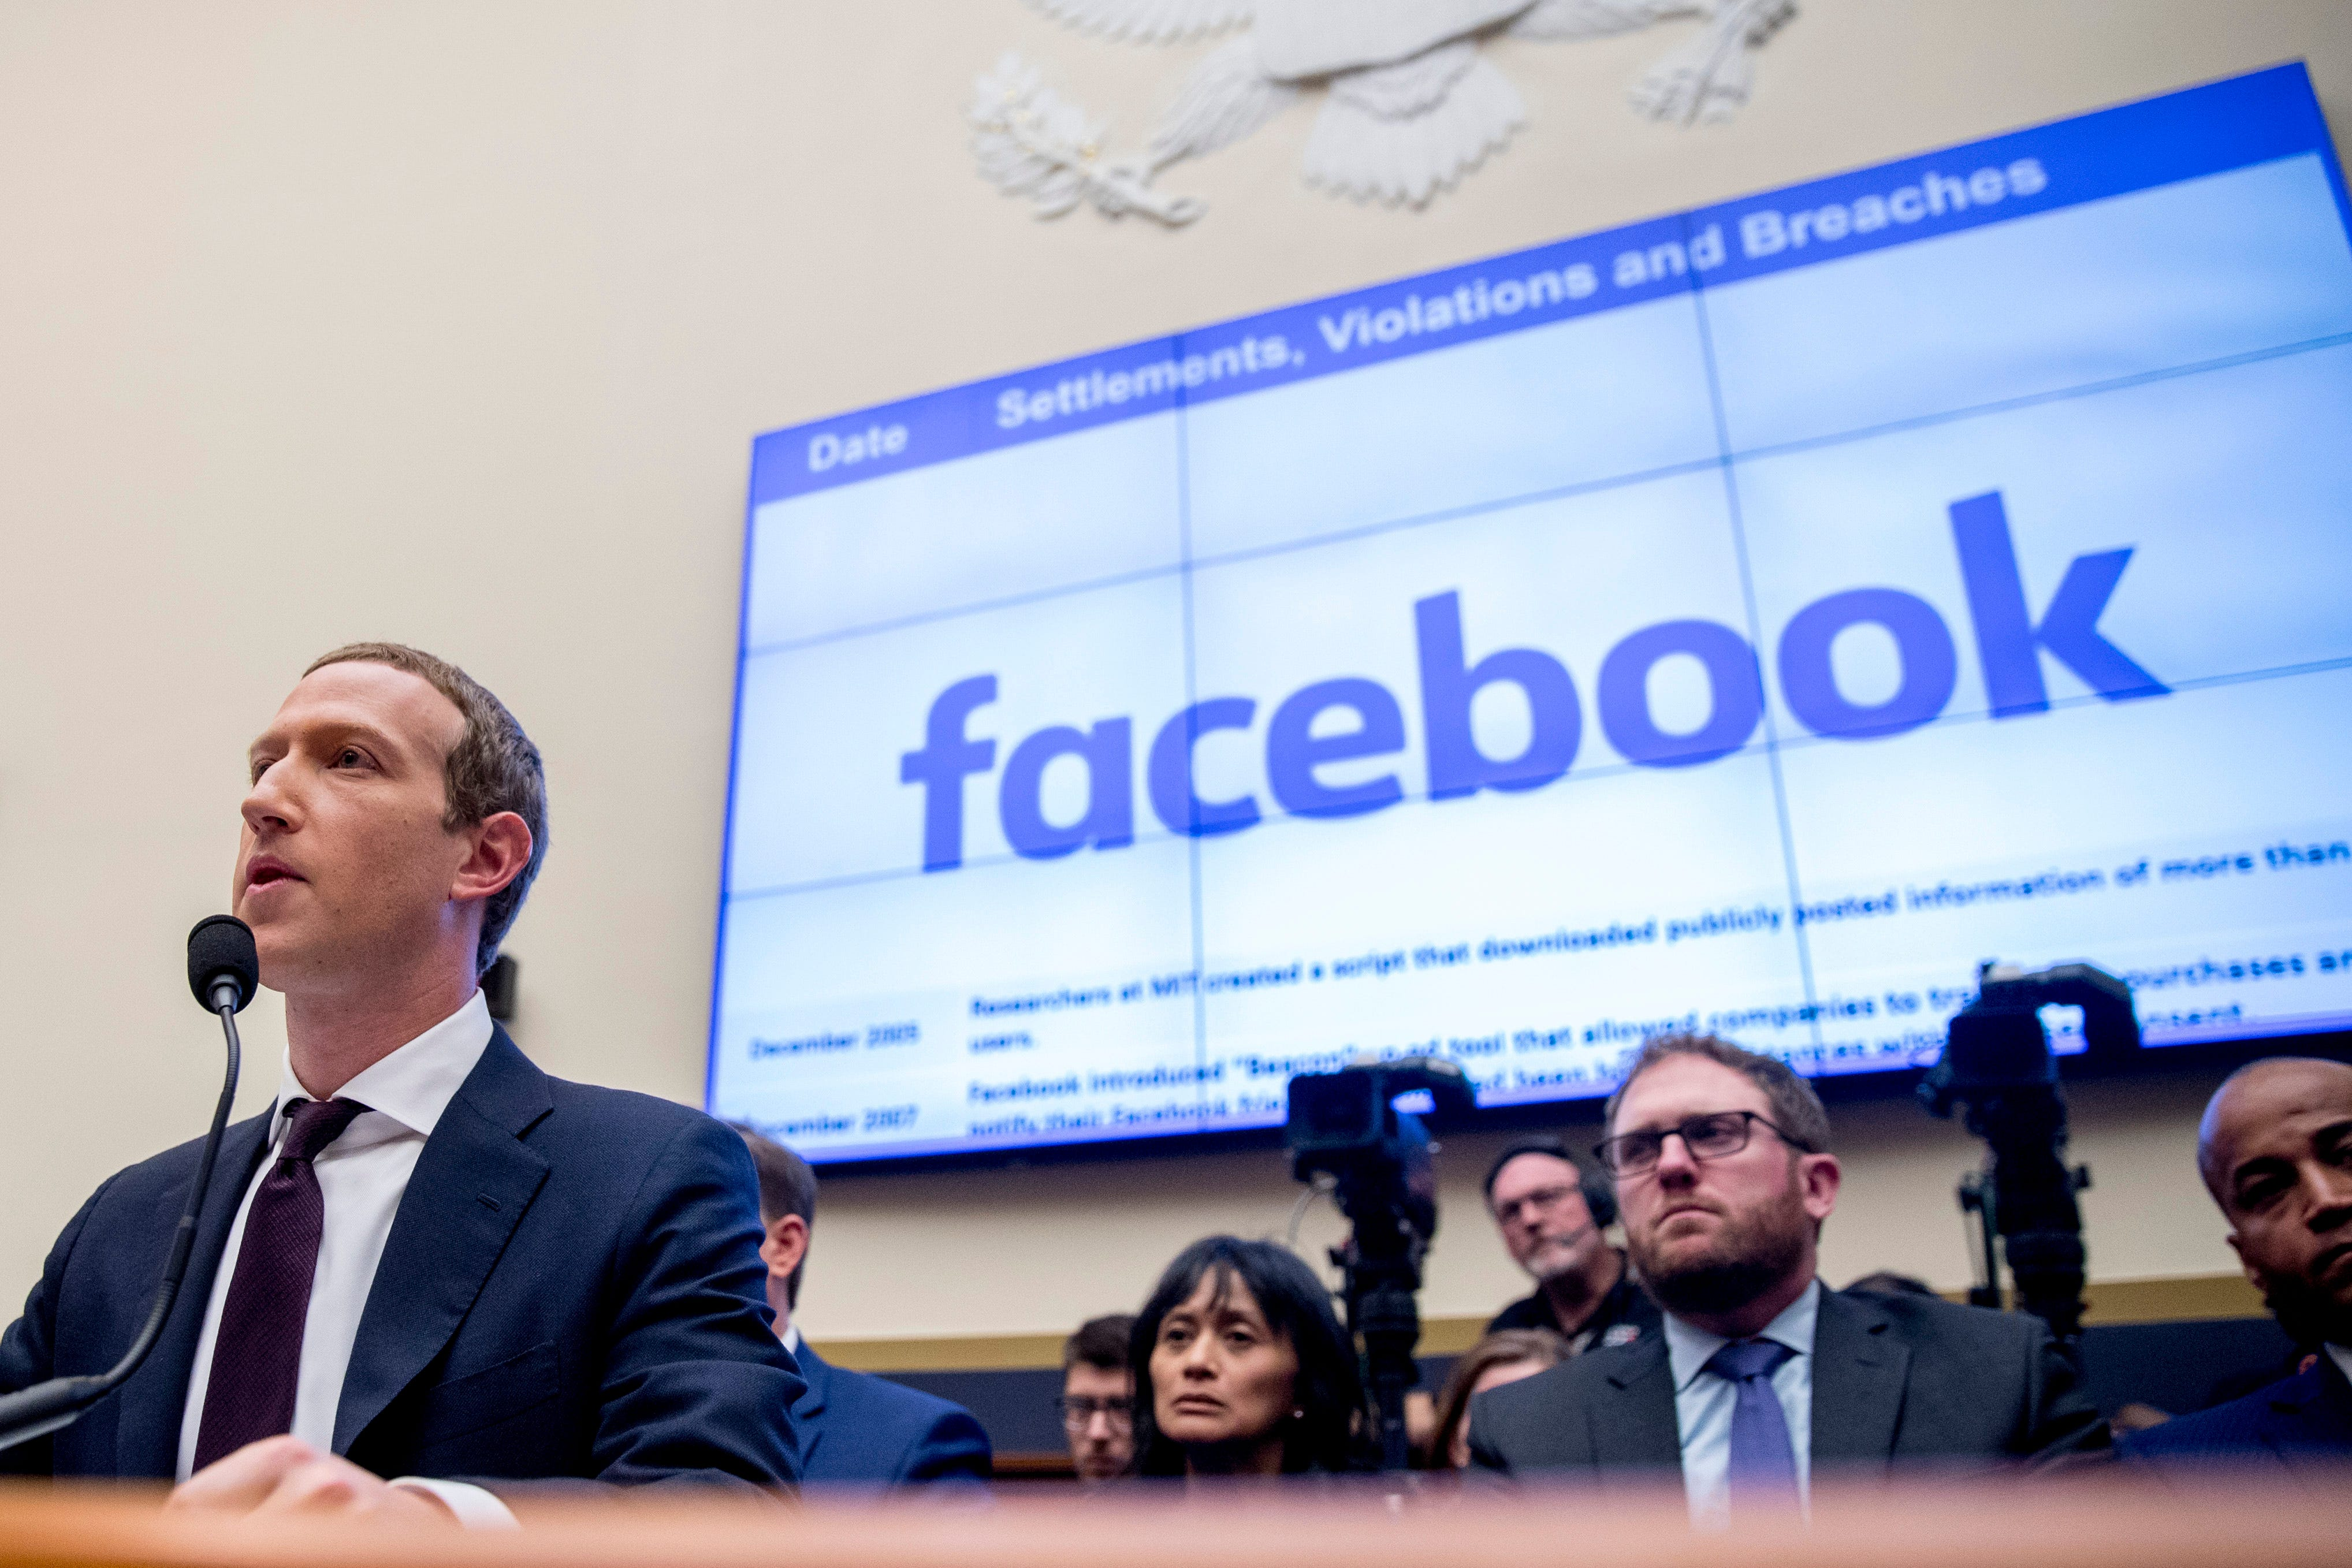 Facebook makes a power move in Australia - and may regret it 2